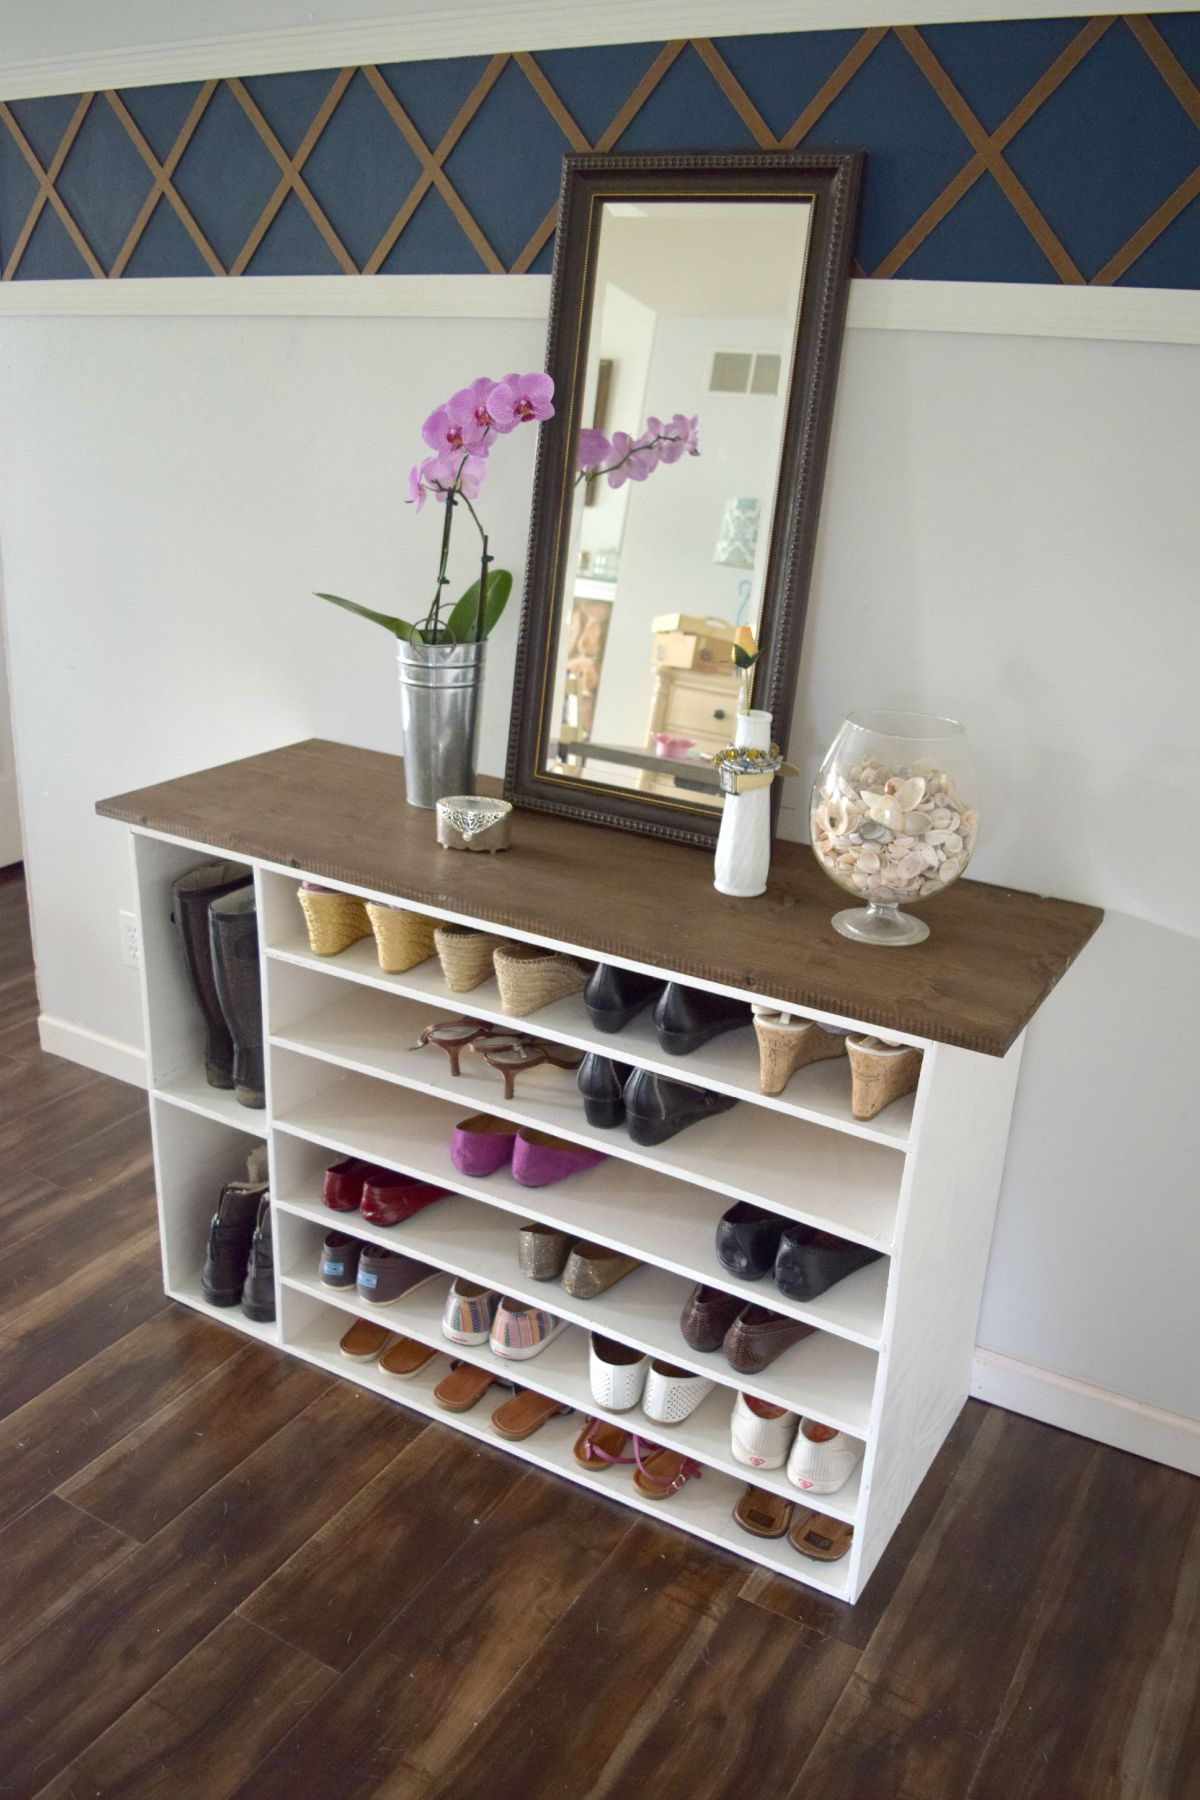 Stylish diy shoe rack perfect for any room entryway diy shoe rack solutioingenieria Choice Image